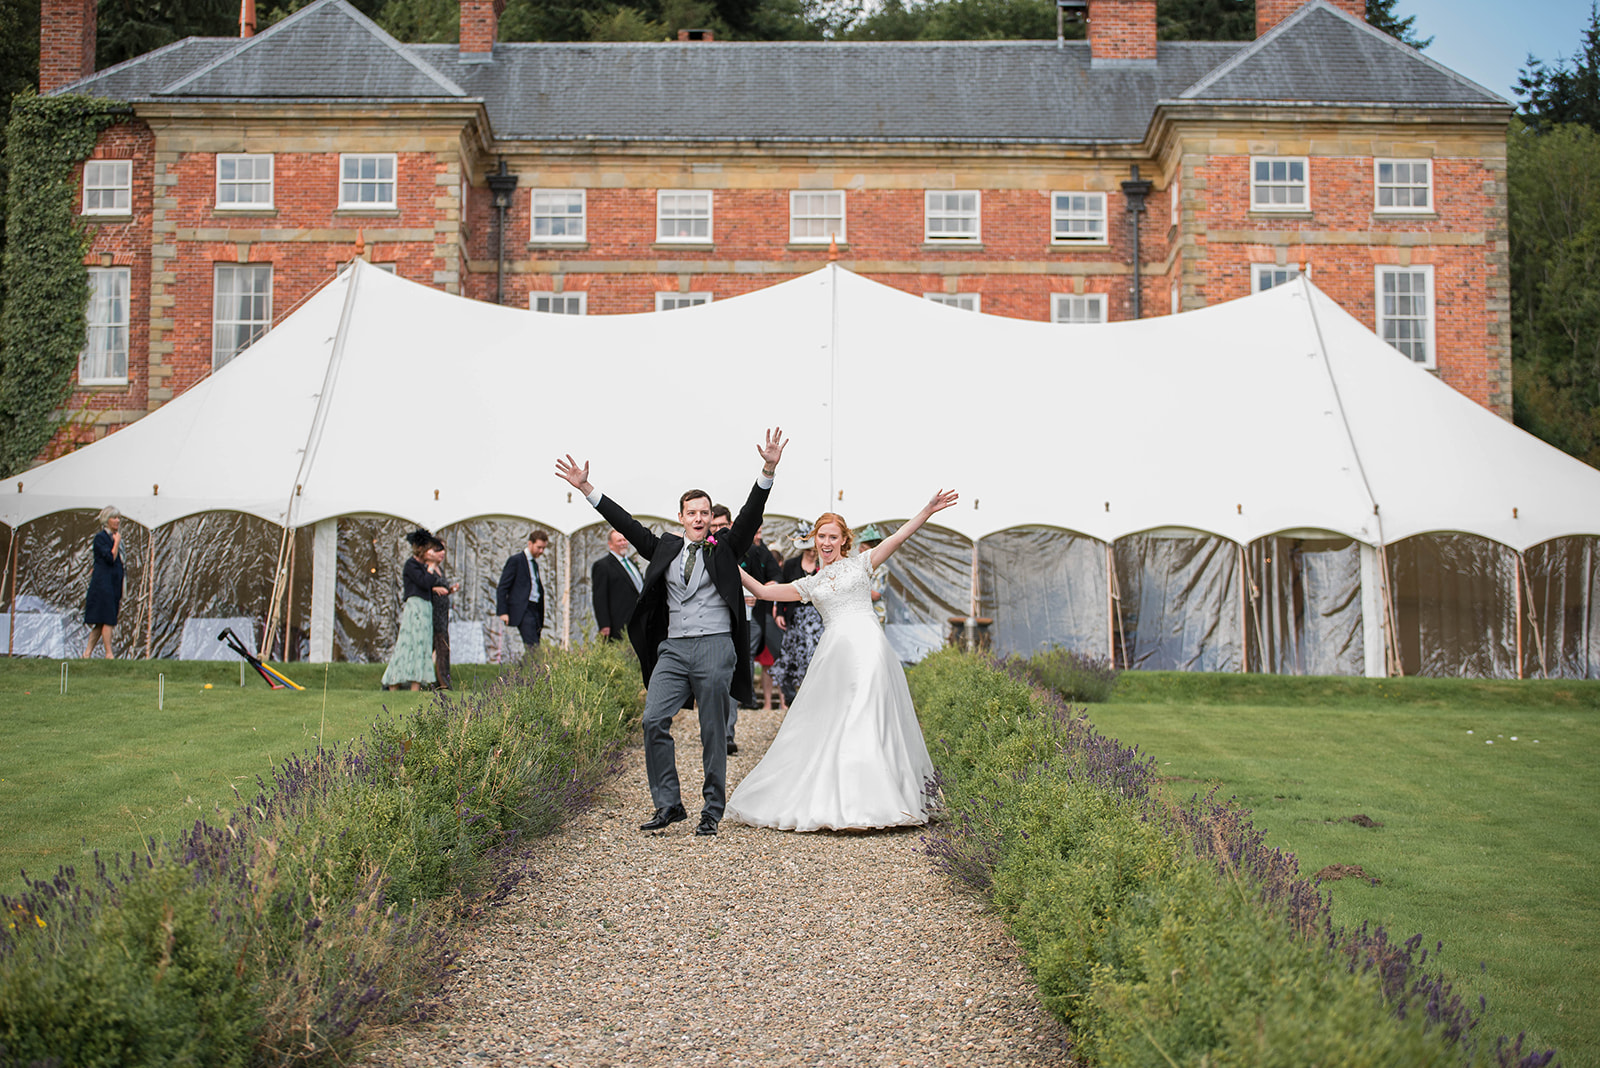 9m x 21m Pretty Petal Marquee with Bride and Groom - Jon Hesketh photographer